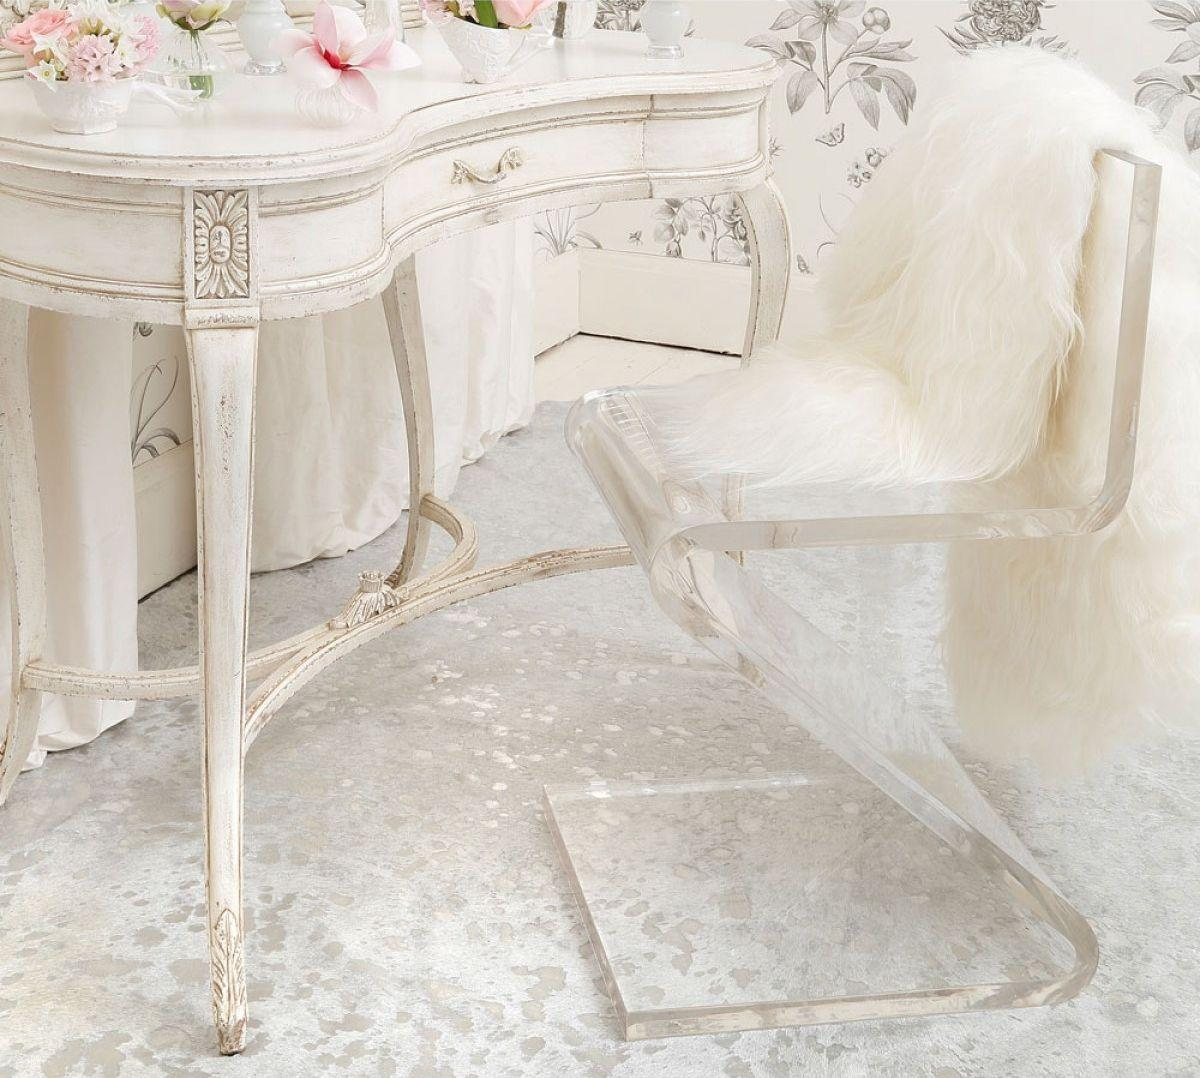 "Foto: Reprodução / <a href=""http://www.frenchbedroomcompany.co.uk/z-chair-clear-solid-acrylic"" target=""_blank"">French bedroom company</a>"